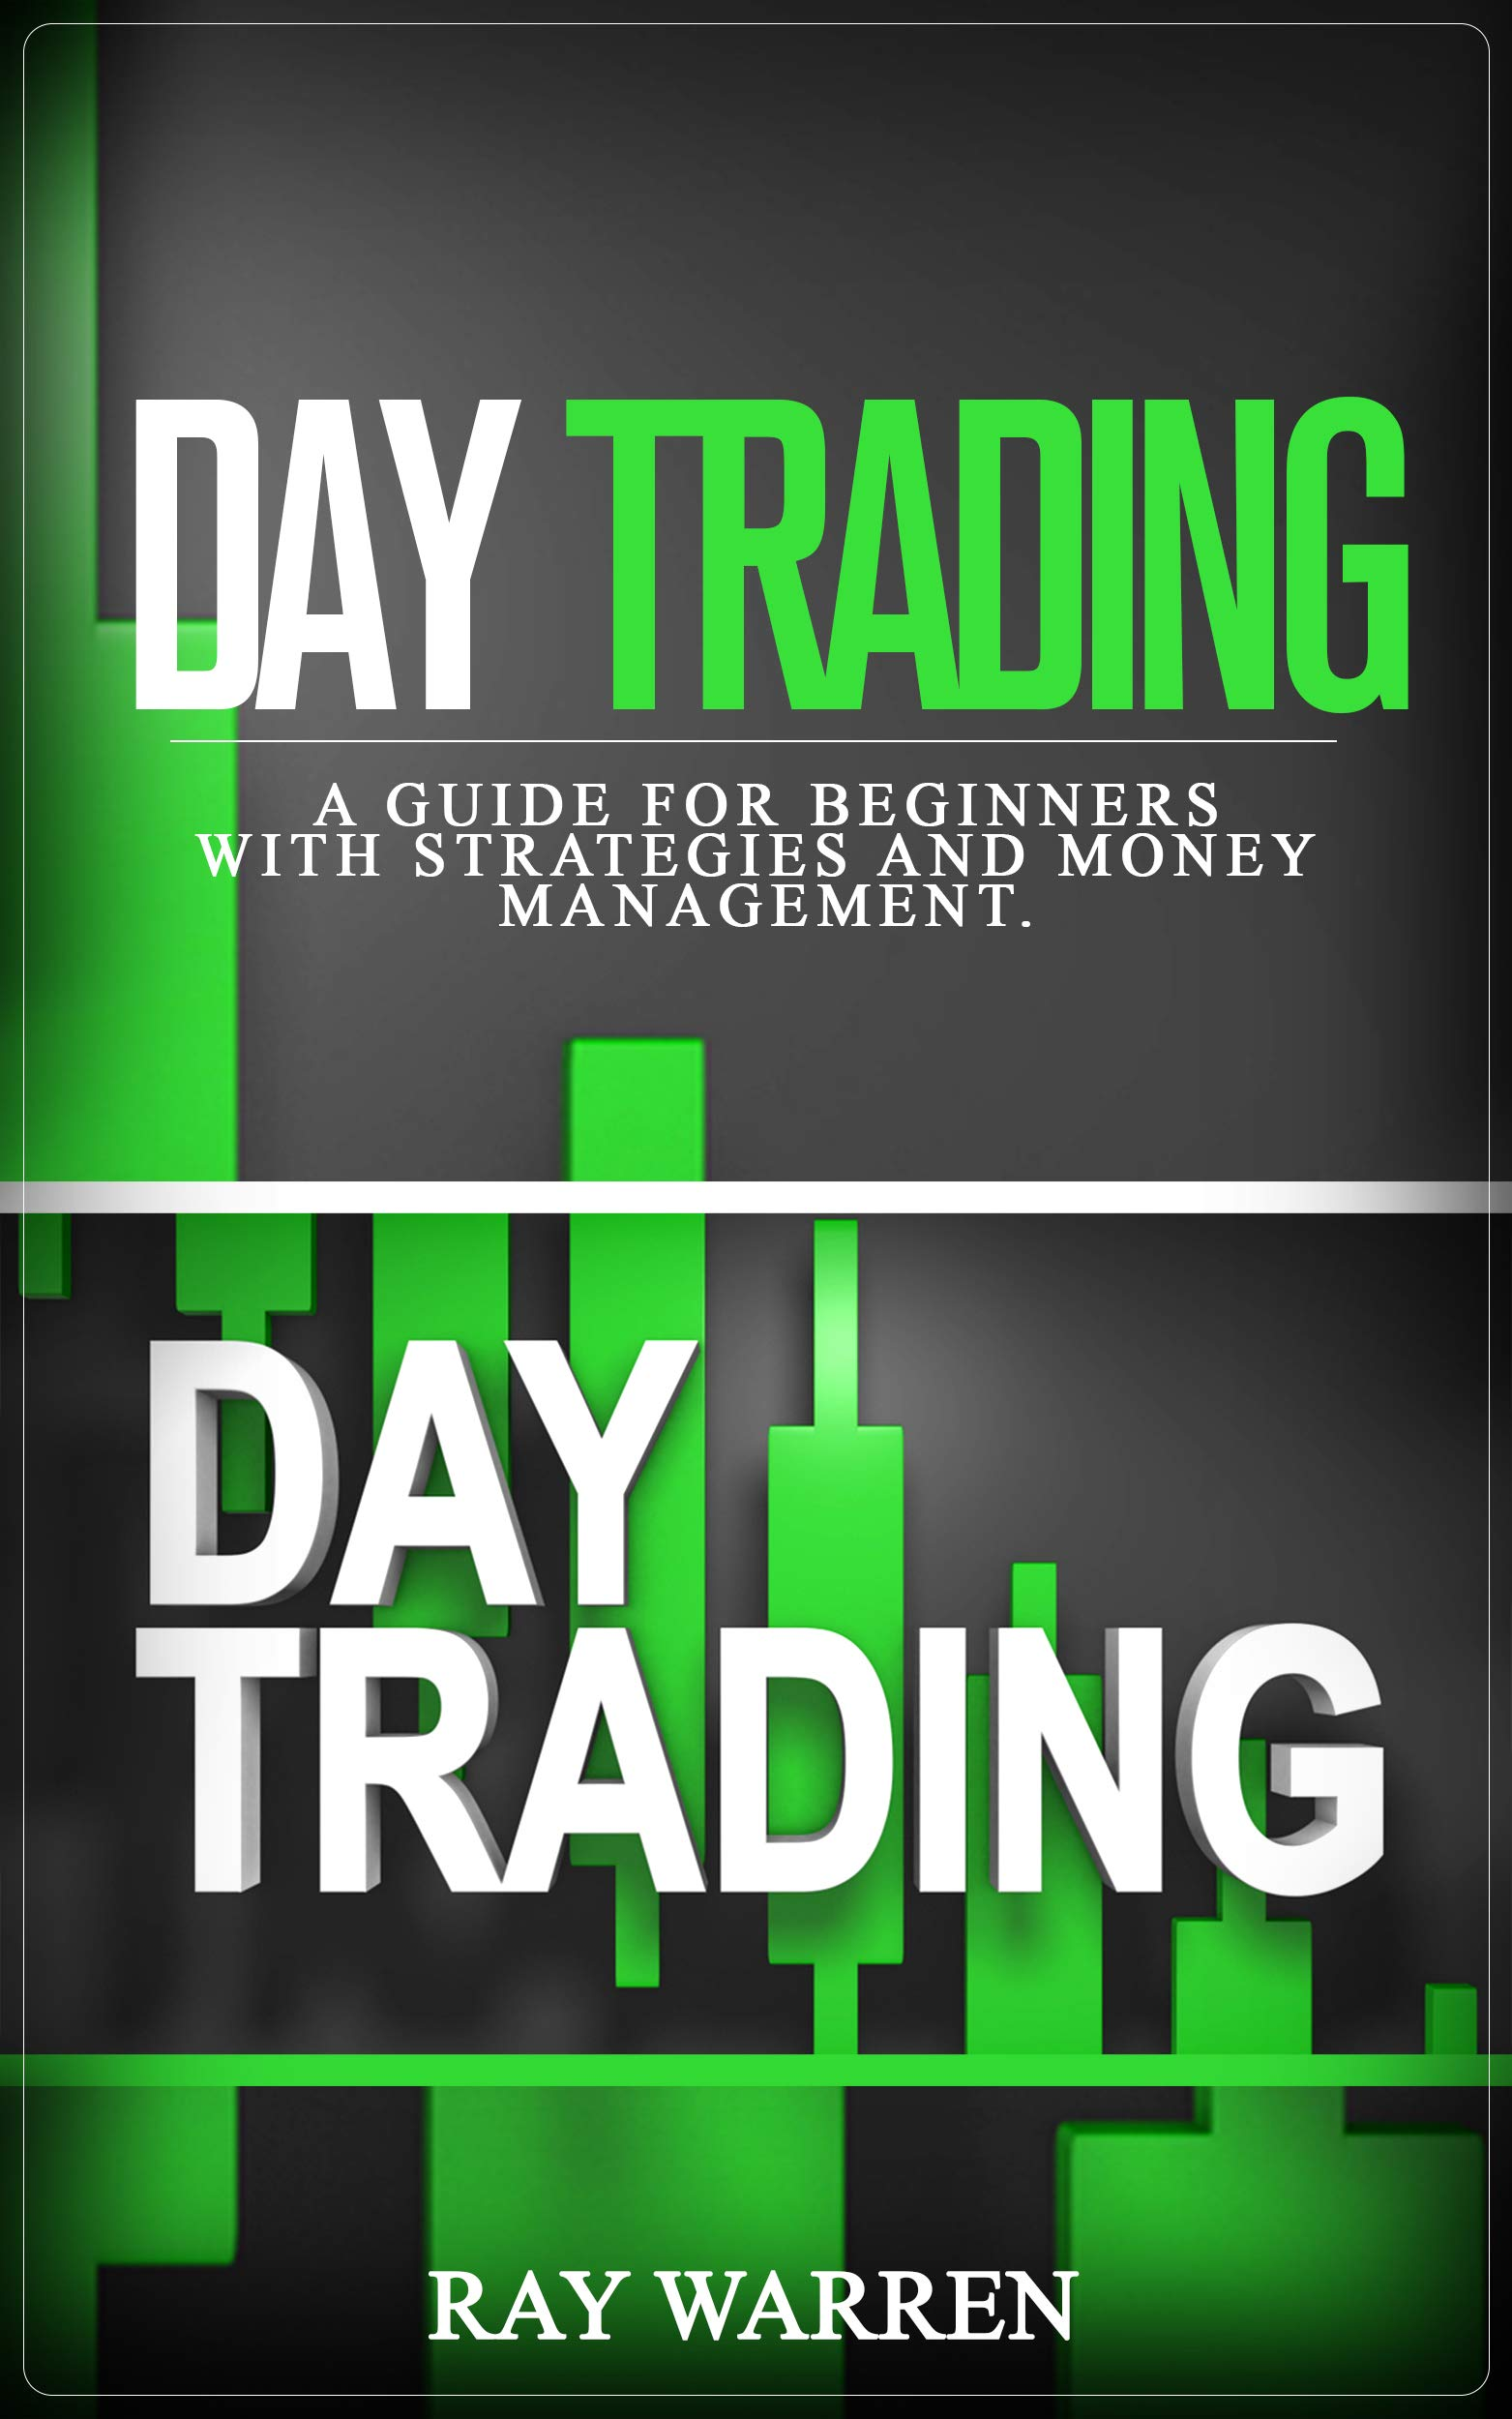 DAY TRADING: A guide for beginners with strategies and money management